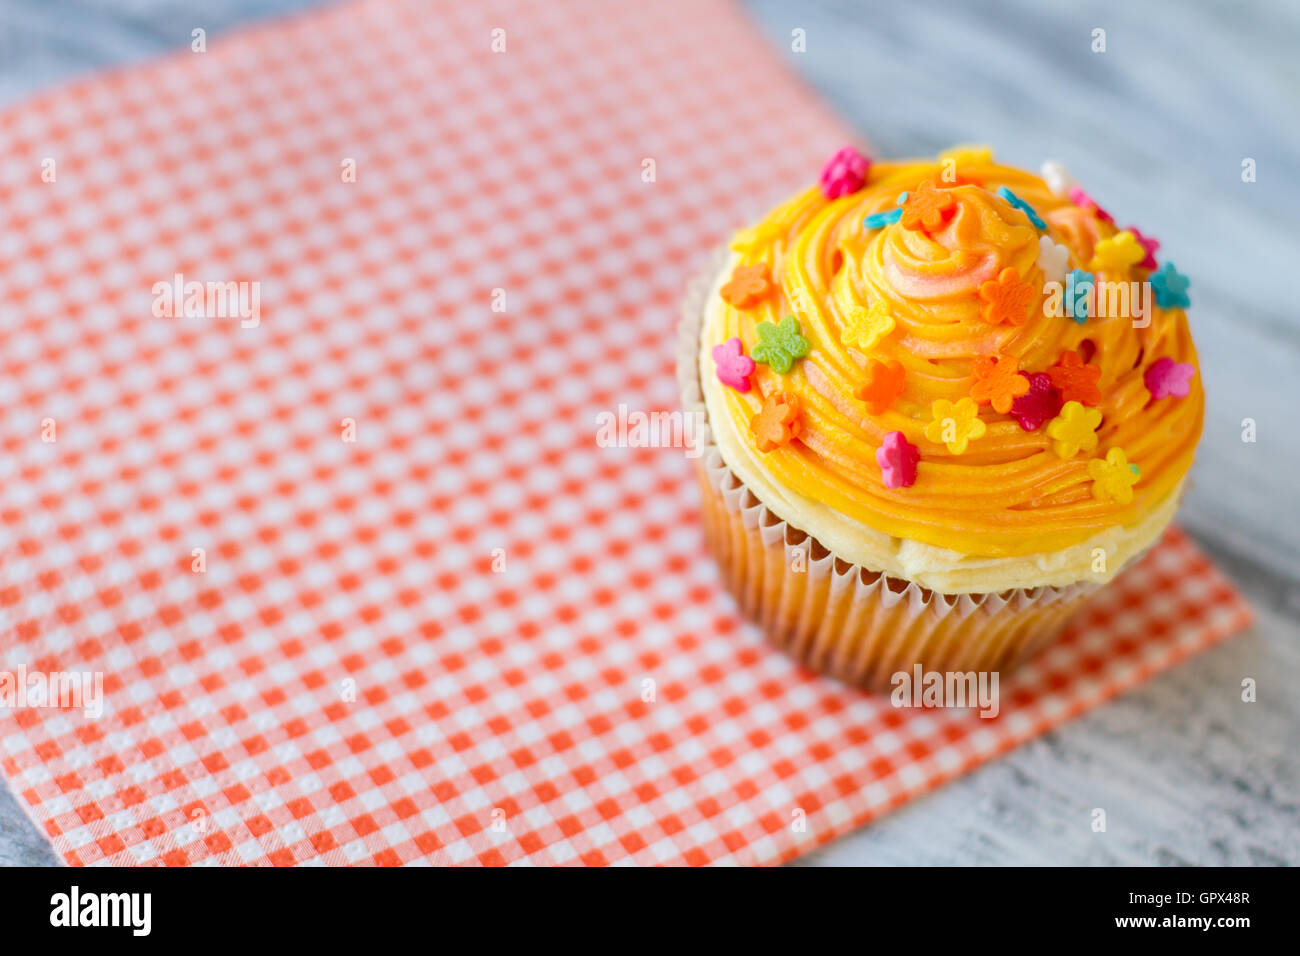 Cupcake with orange icing. - Stock Image